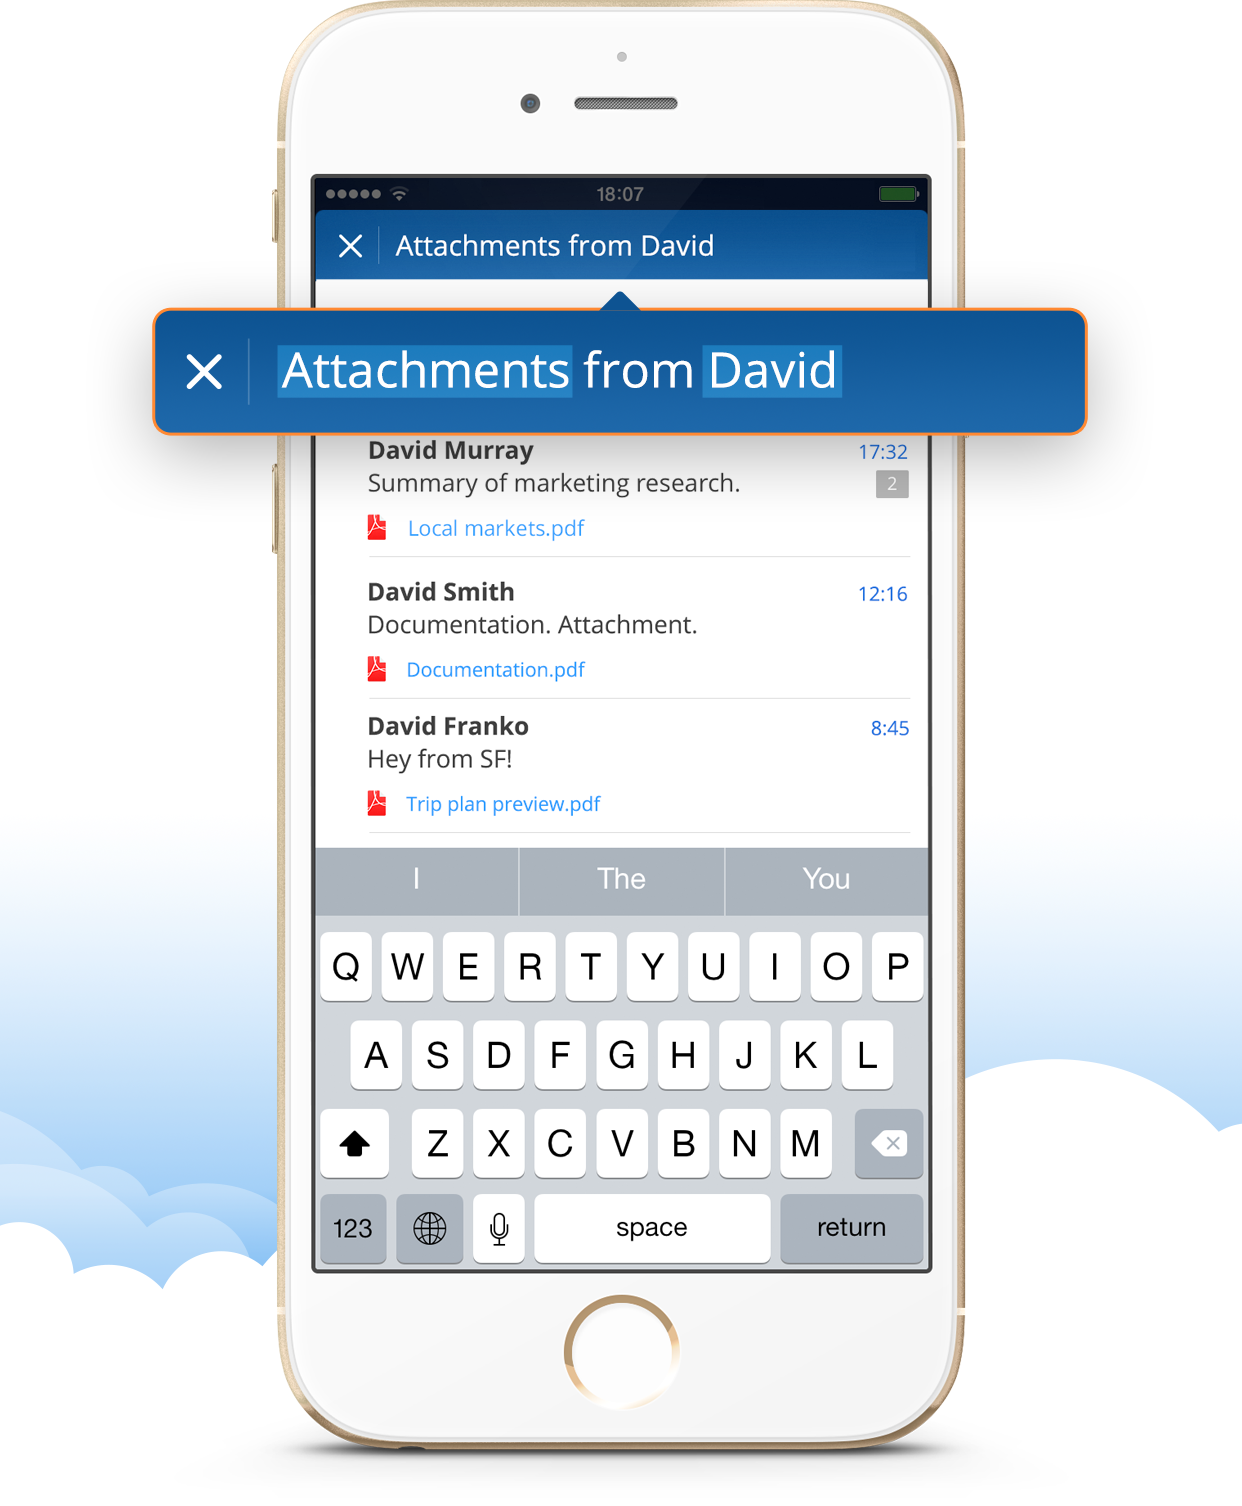 Search email on iPhone, iPad and Mac | Spark by Readdle